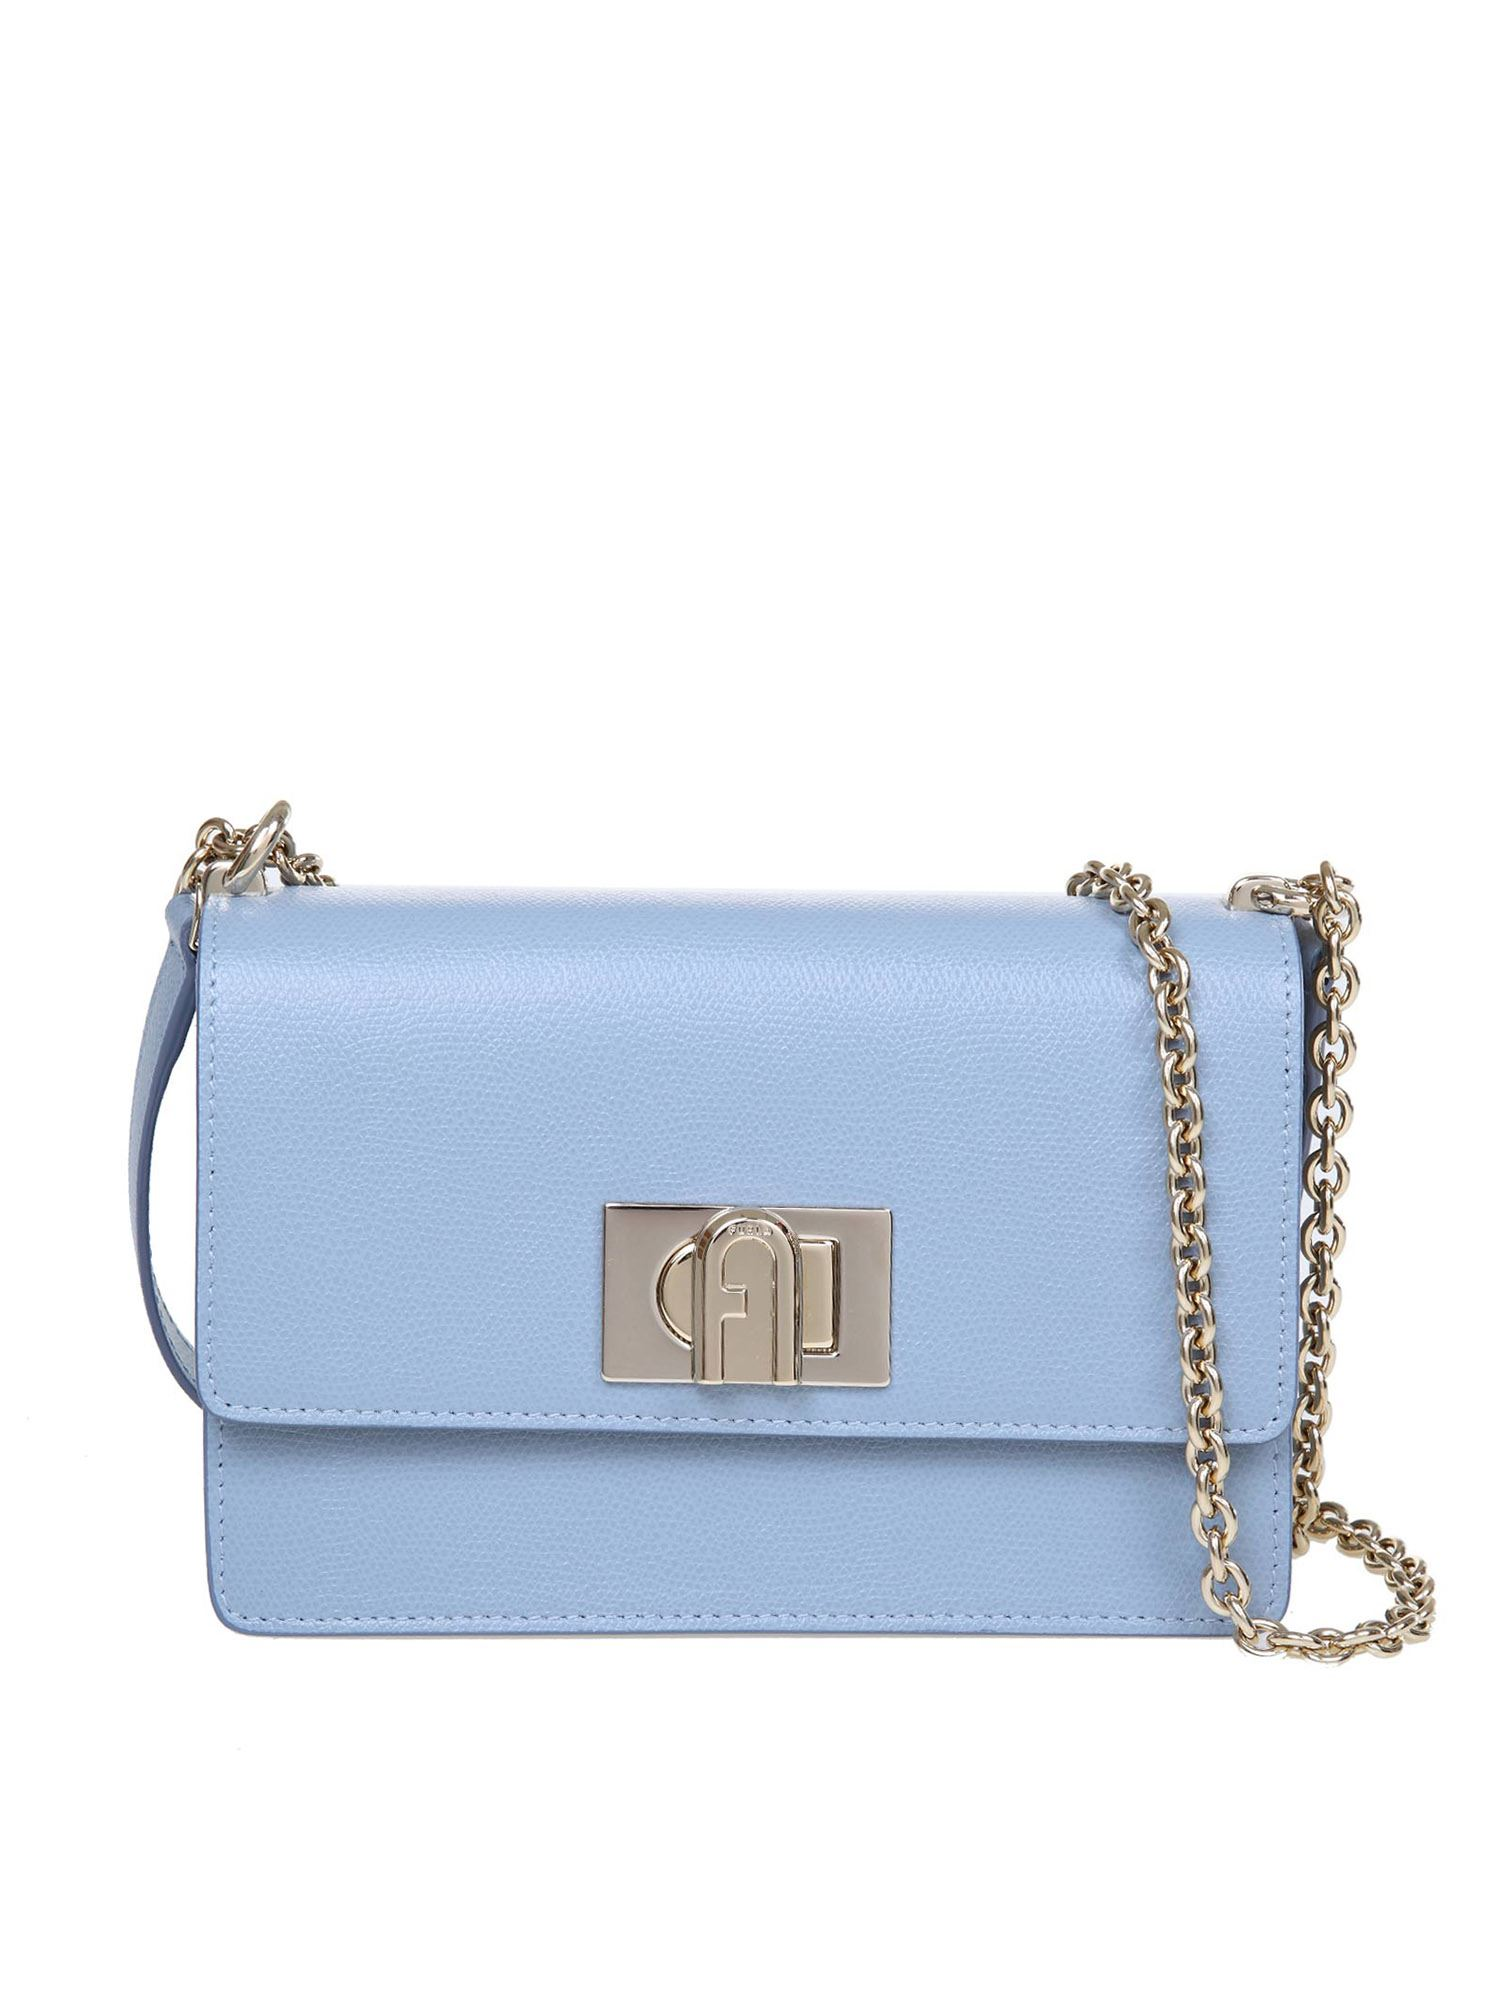 Furla 1927 MINI CROSSBODY BAG IN LIGHT BLUE